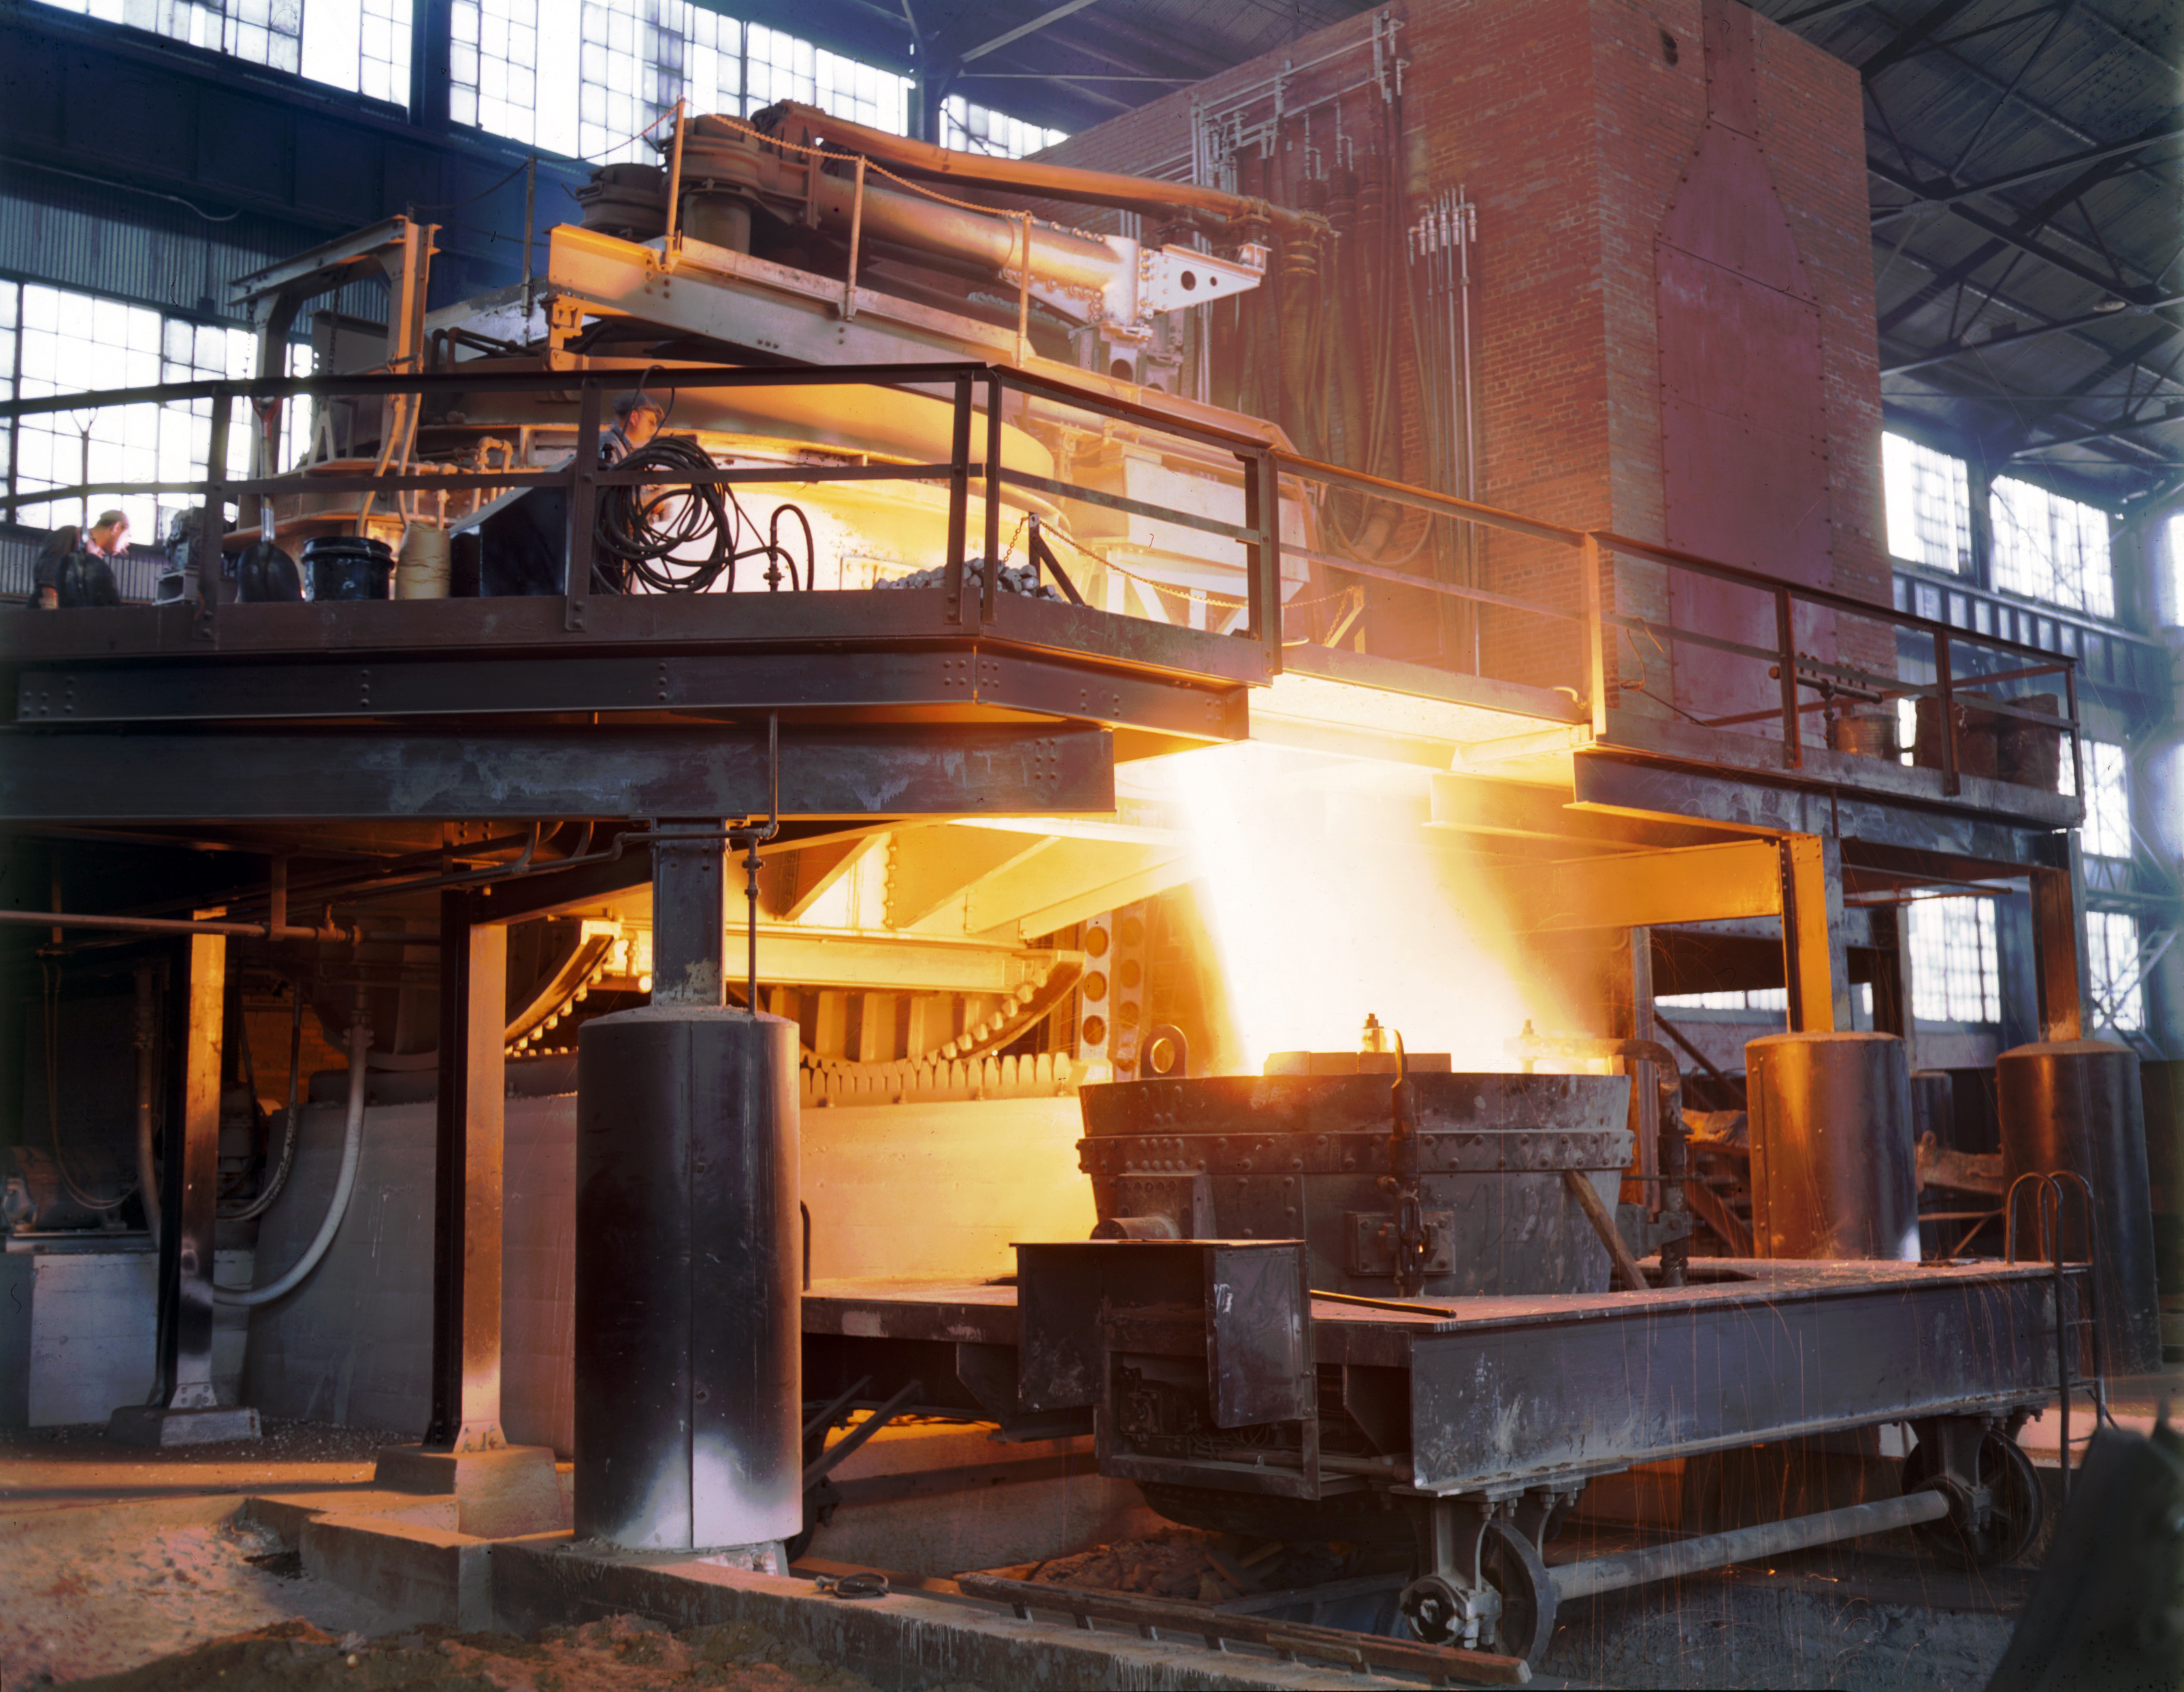 The Risk of developing disease for steel workers